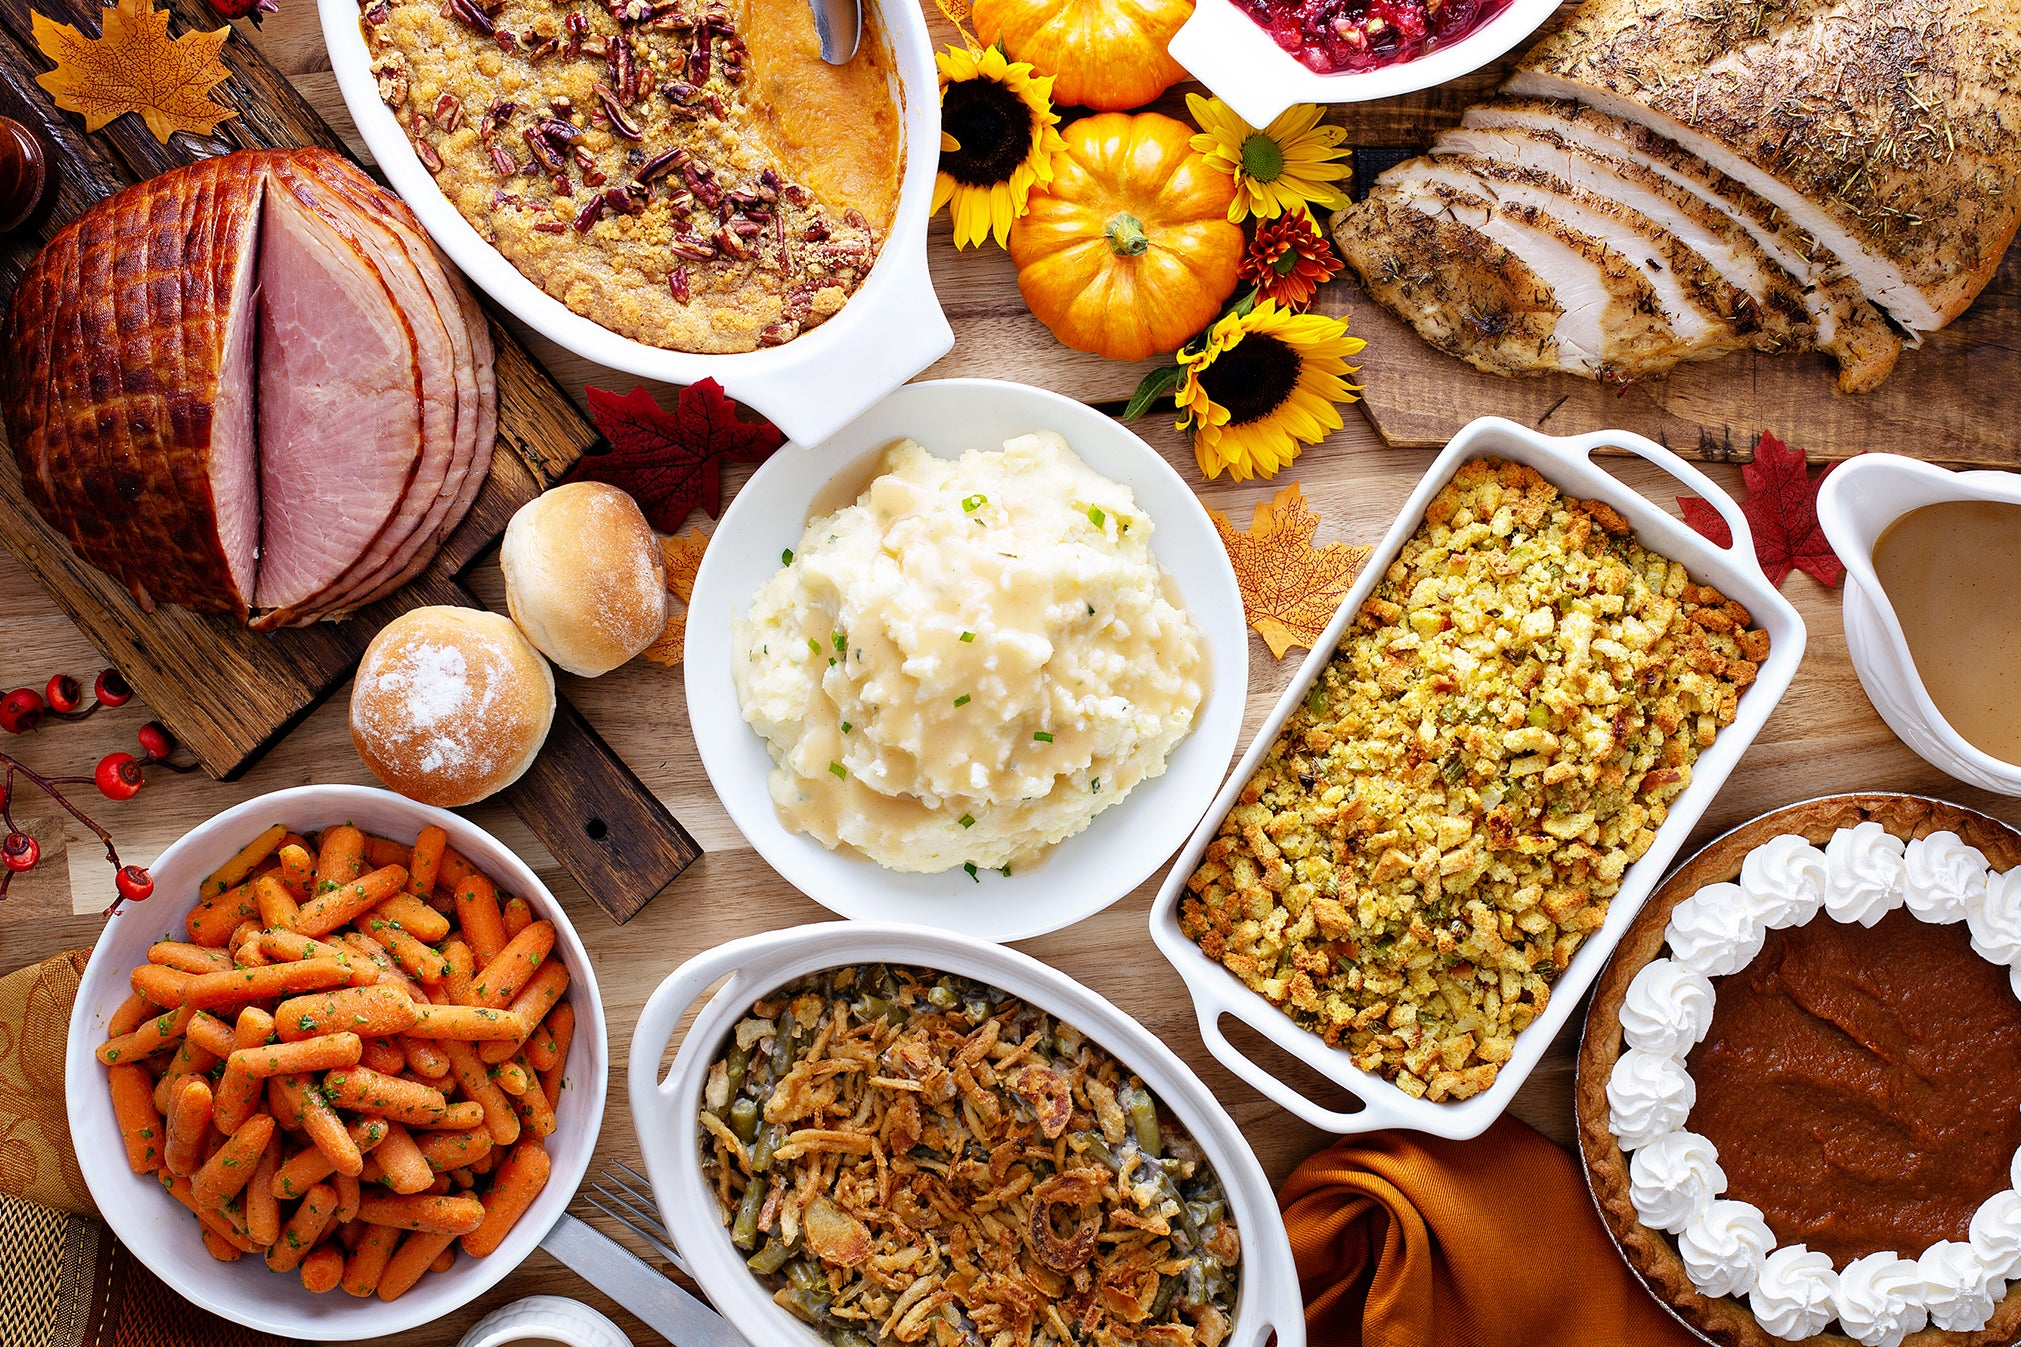 Thanksgiving: Two simple side recipes you can make ahead of time